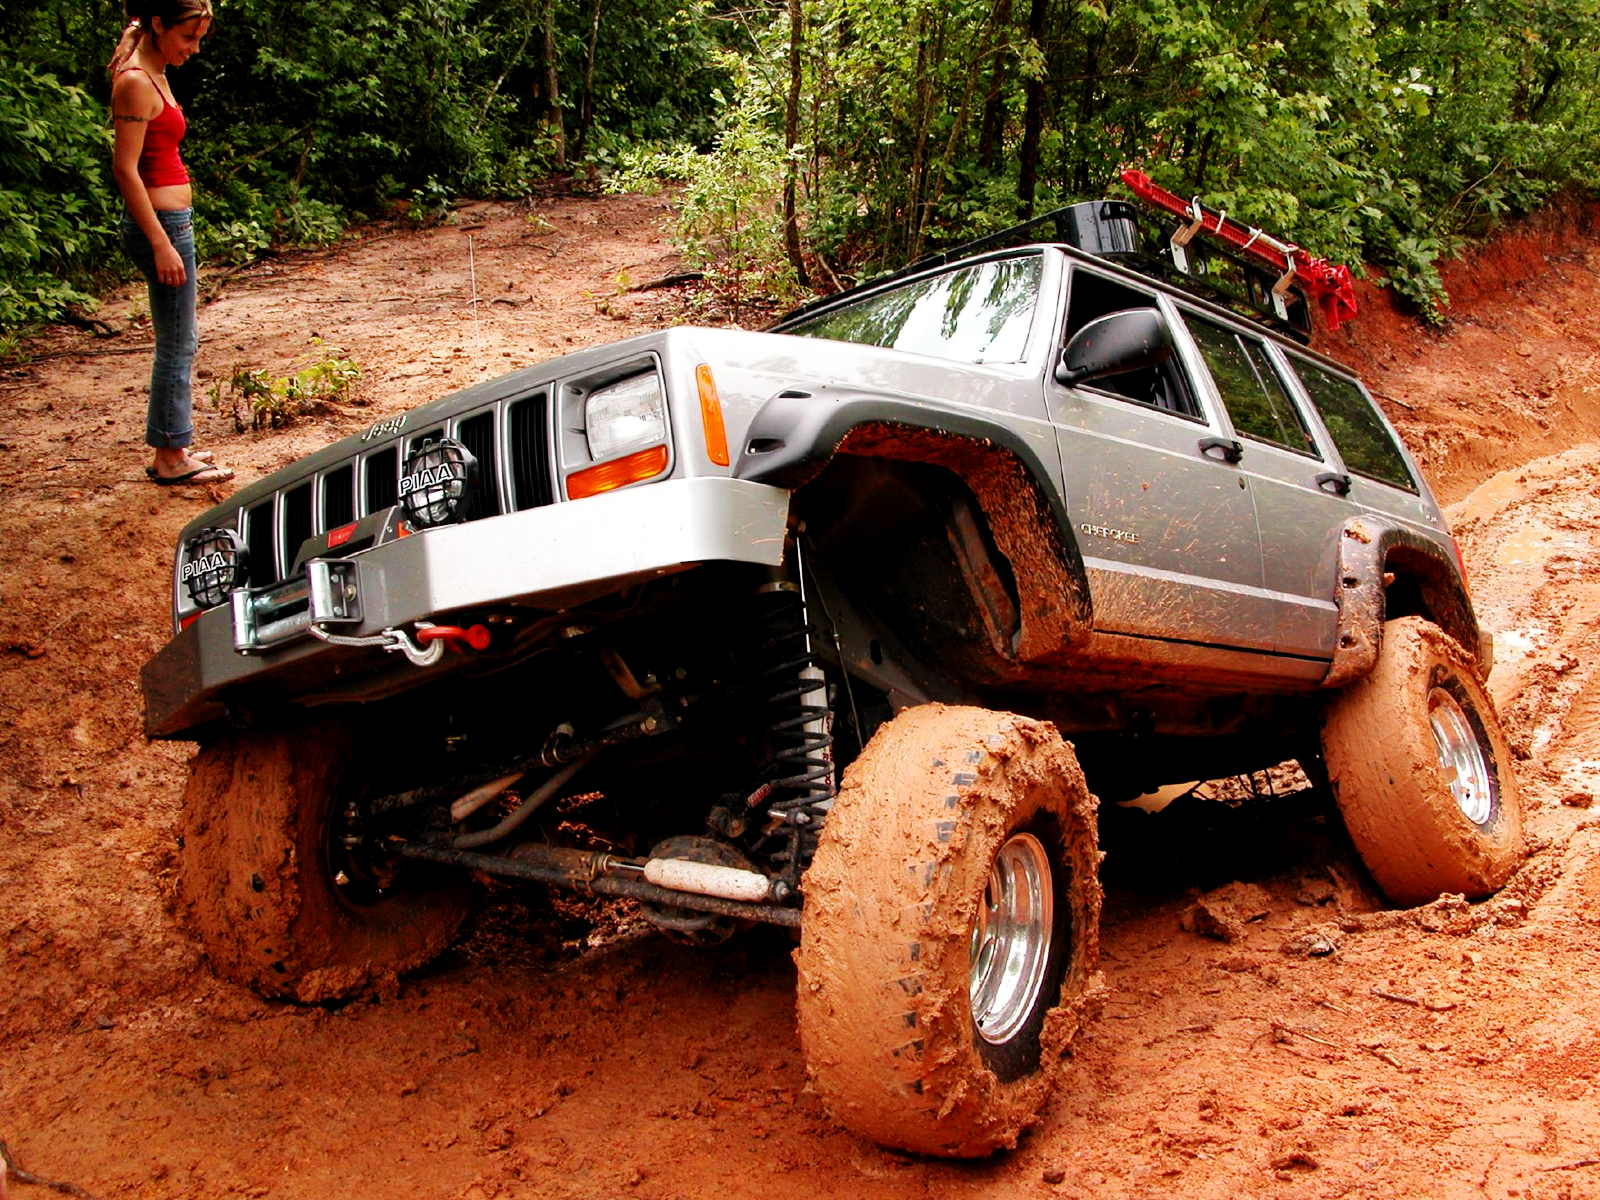 Off_Road_Grand_Cheroke_Jeep_HD_Wallpaper-Vvallpaper.Net.jpg